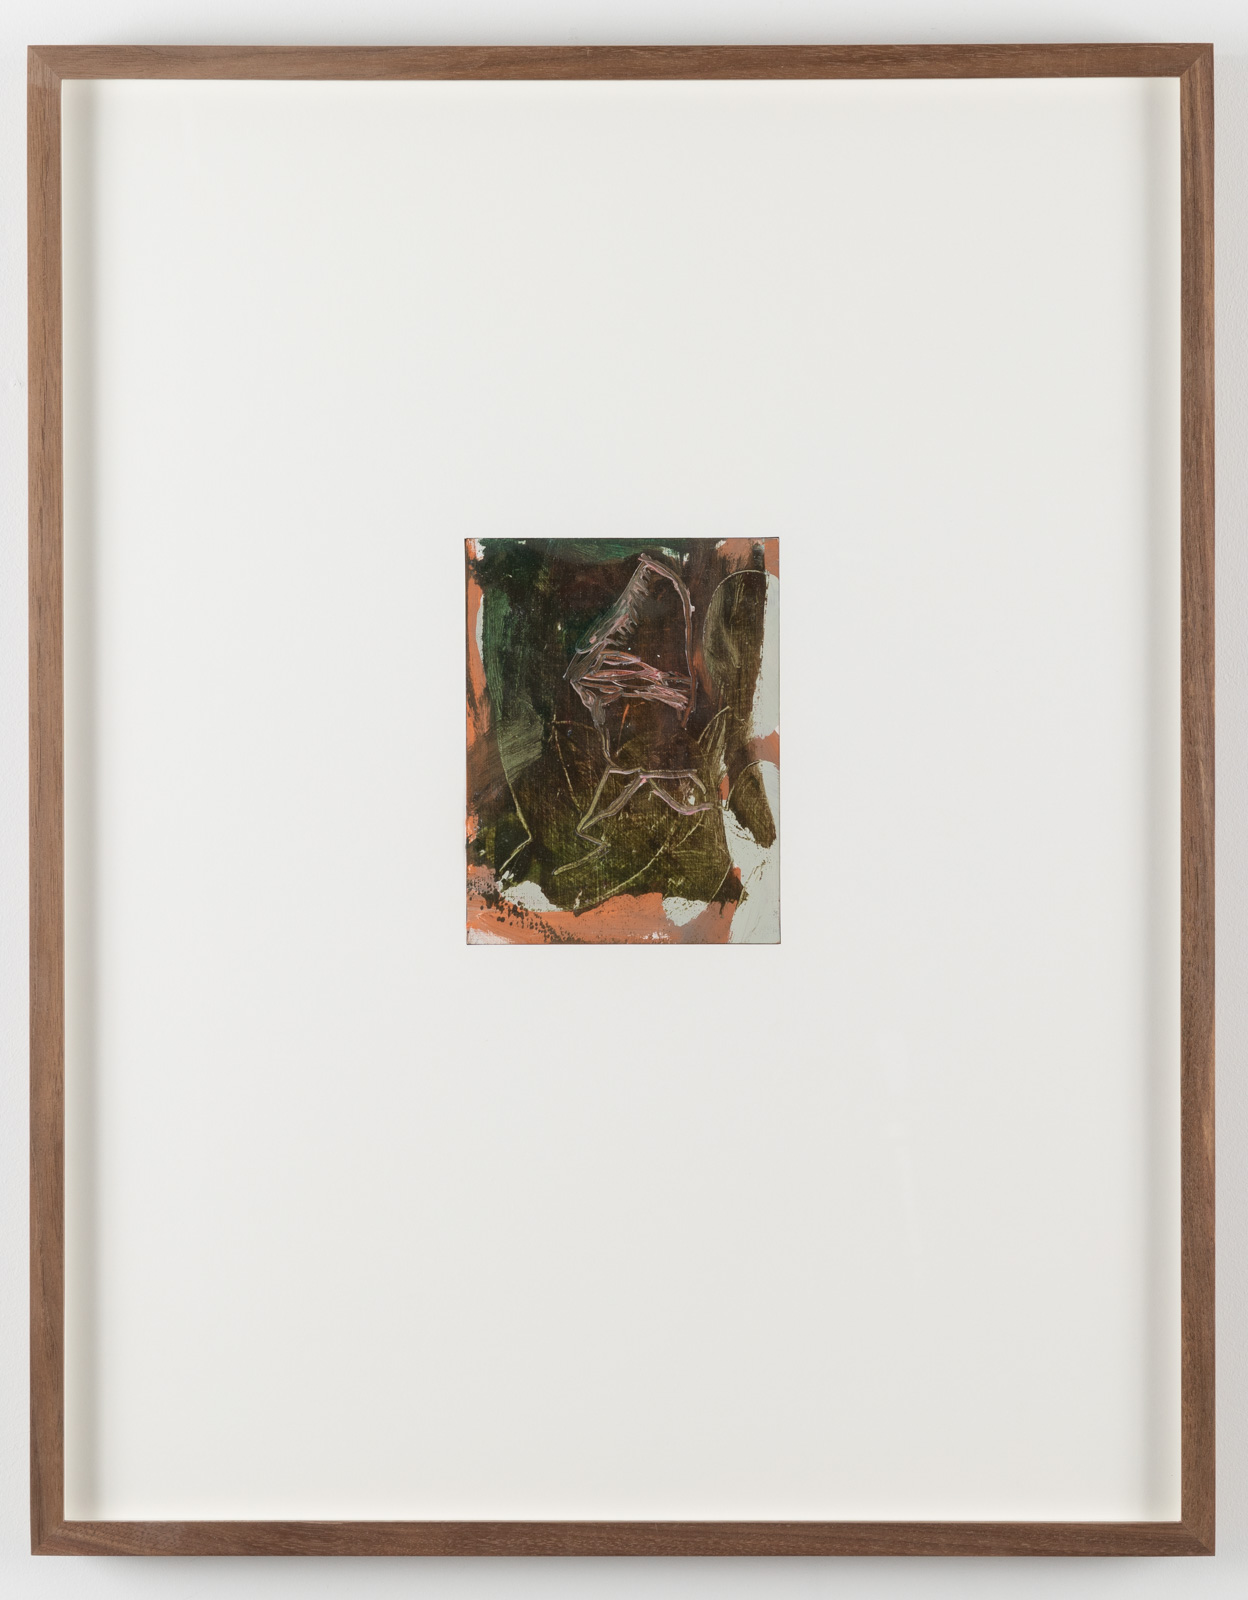 The Very Small Rubicon Paintings No. 03, 2019. Oil on panel in artist's frame, 17,5 x 13,5 cm, overall 65 x 51 x 4 cm